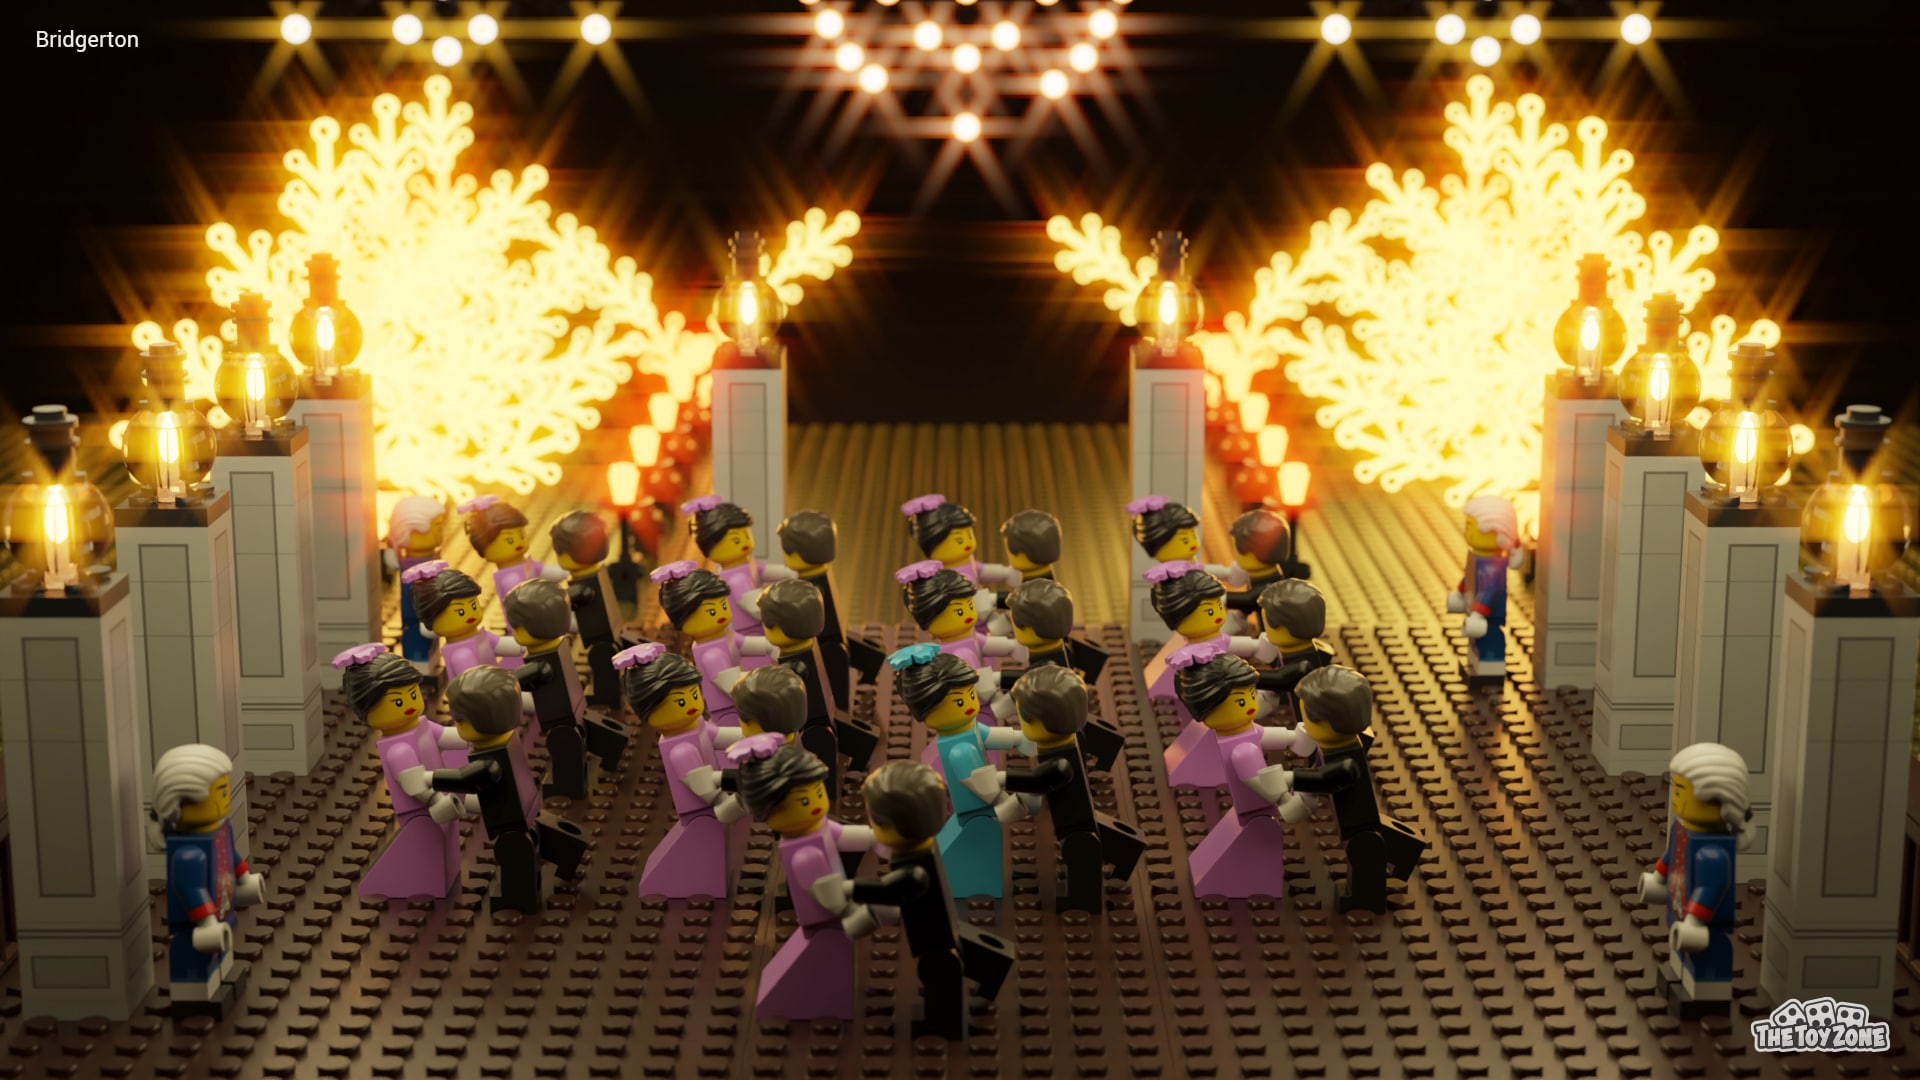 8 Scenes From Netflix Shows Re-created With LEGOs